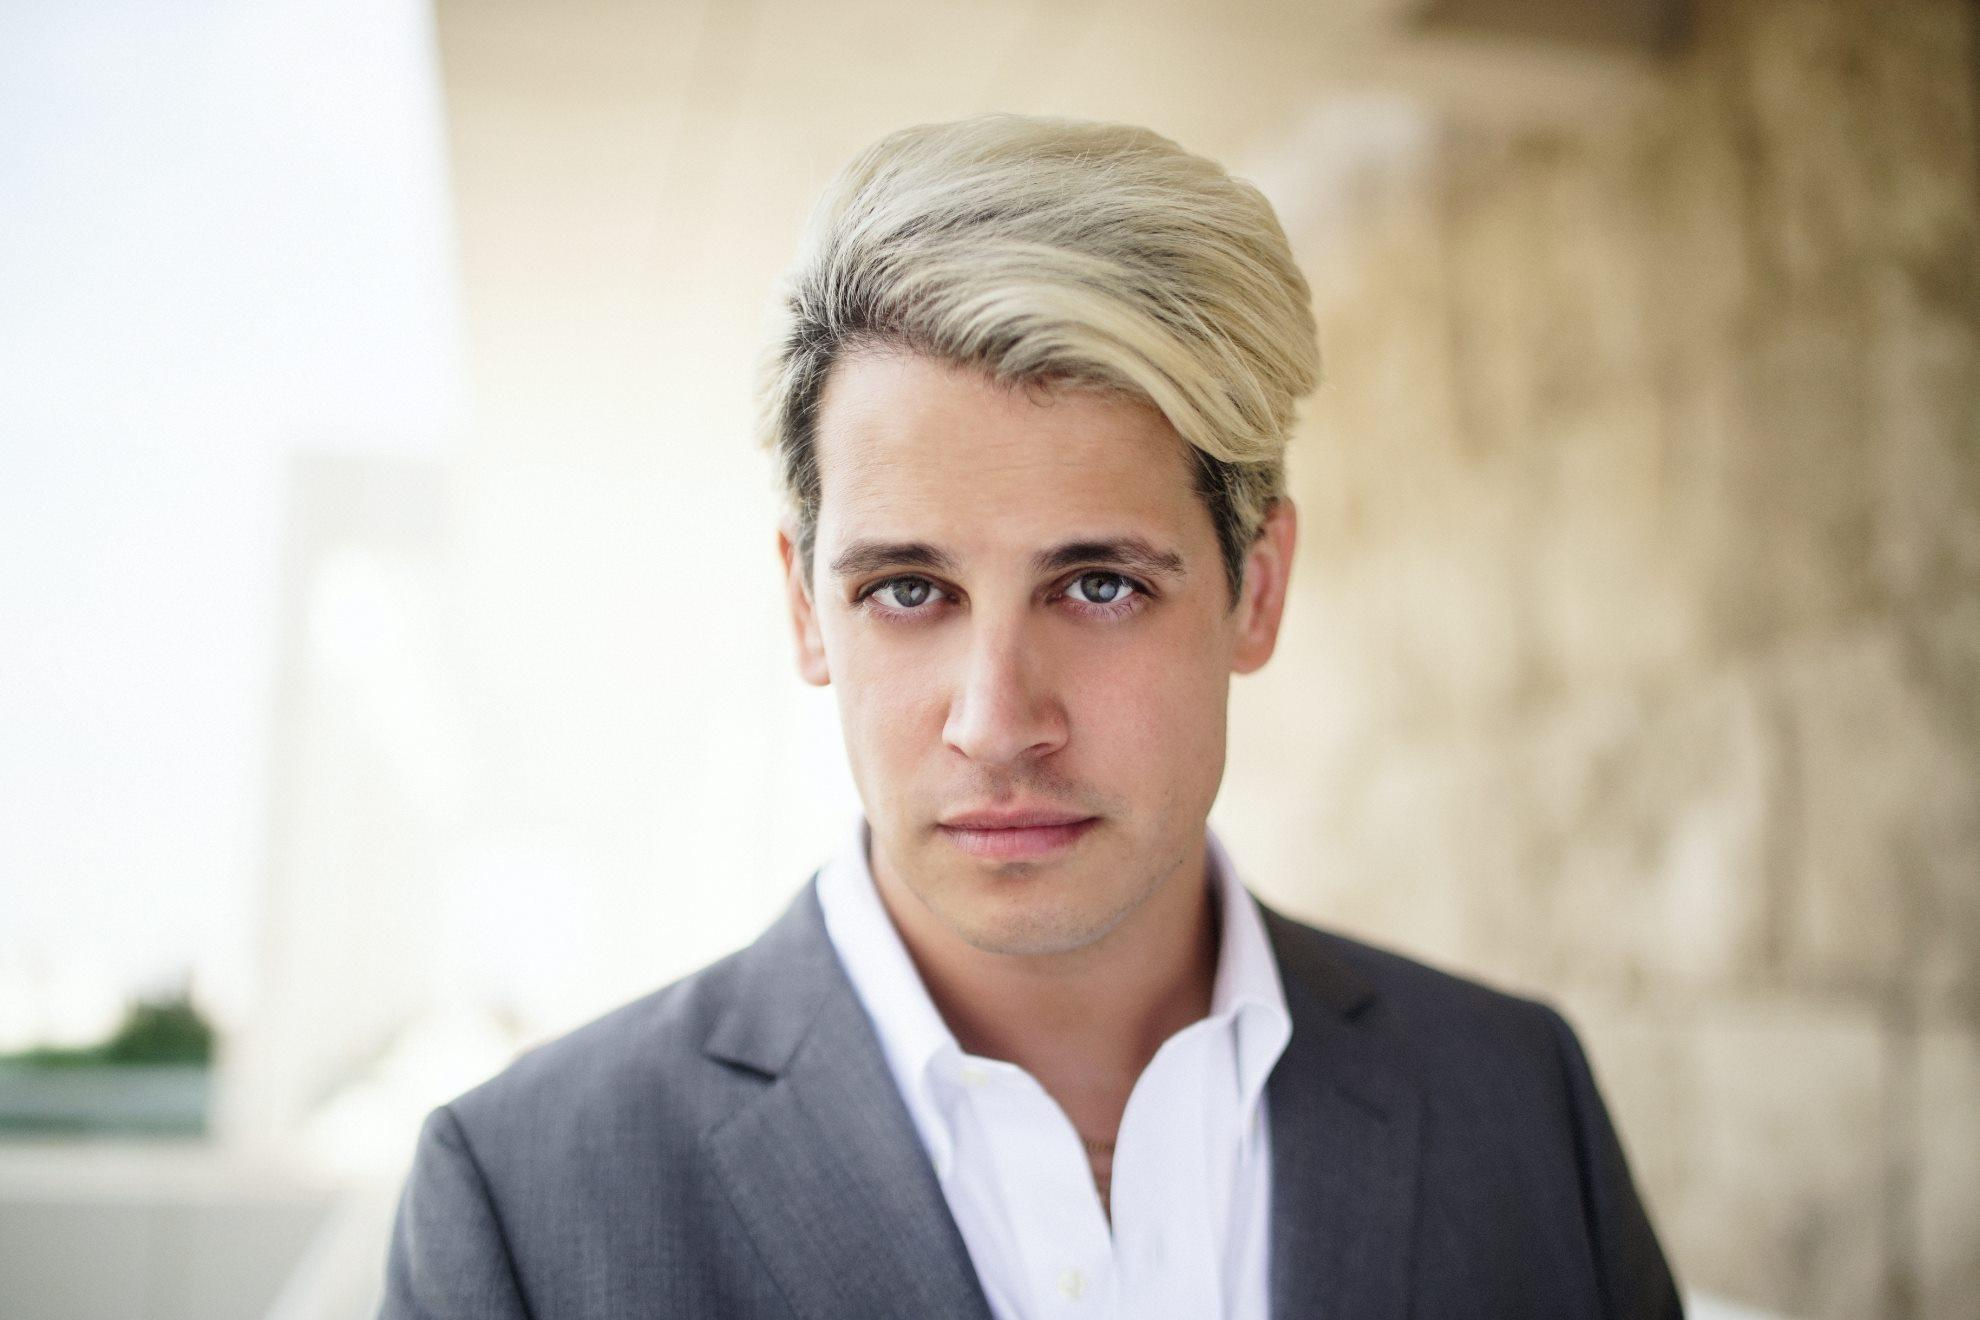 Let Yiannopoulos speak